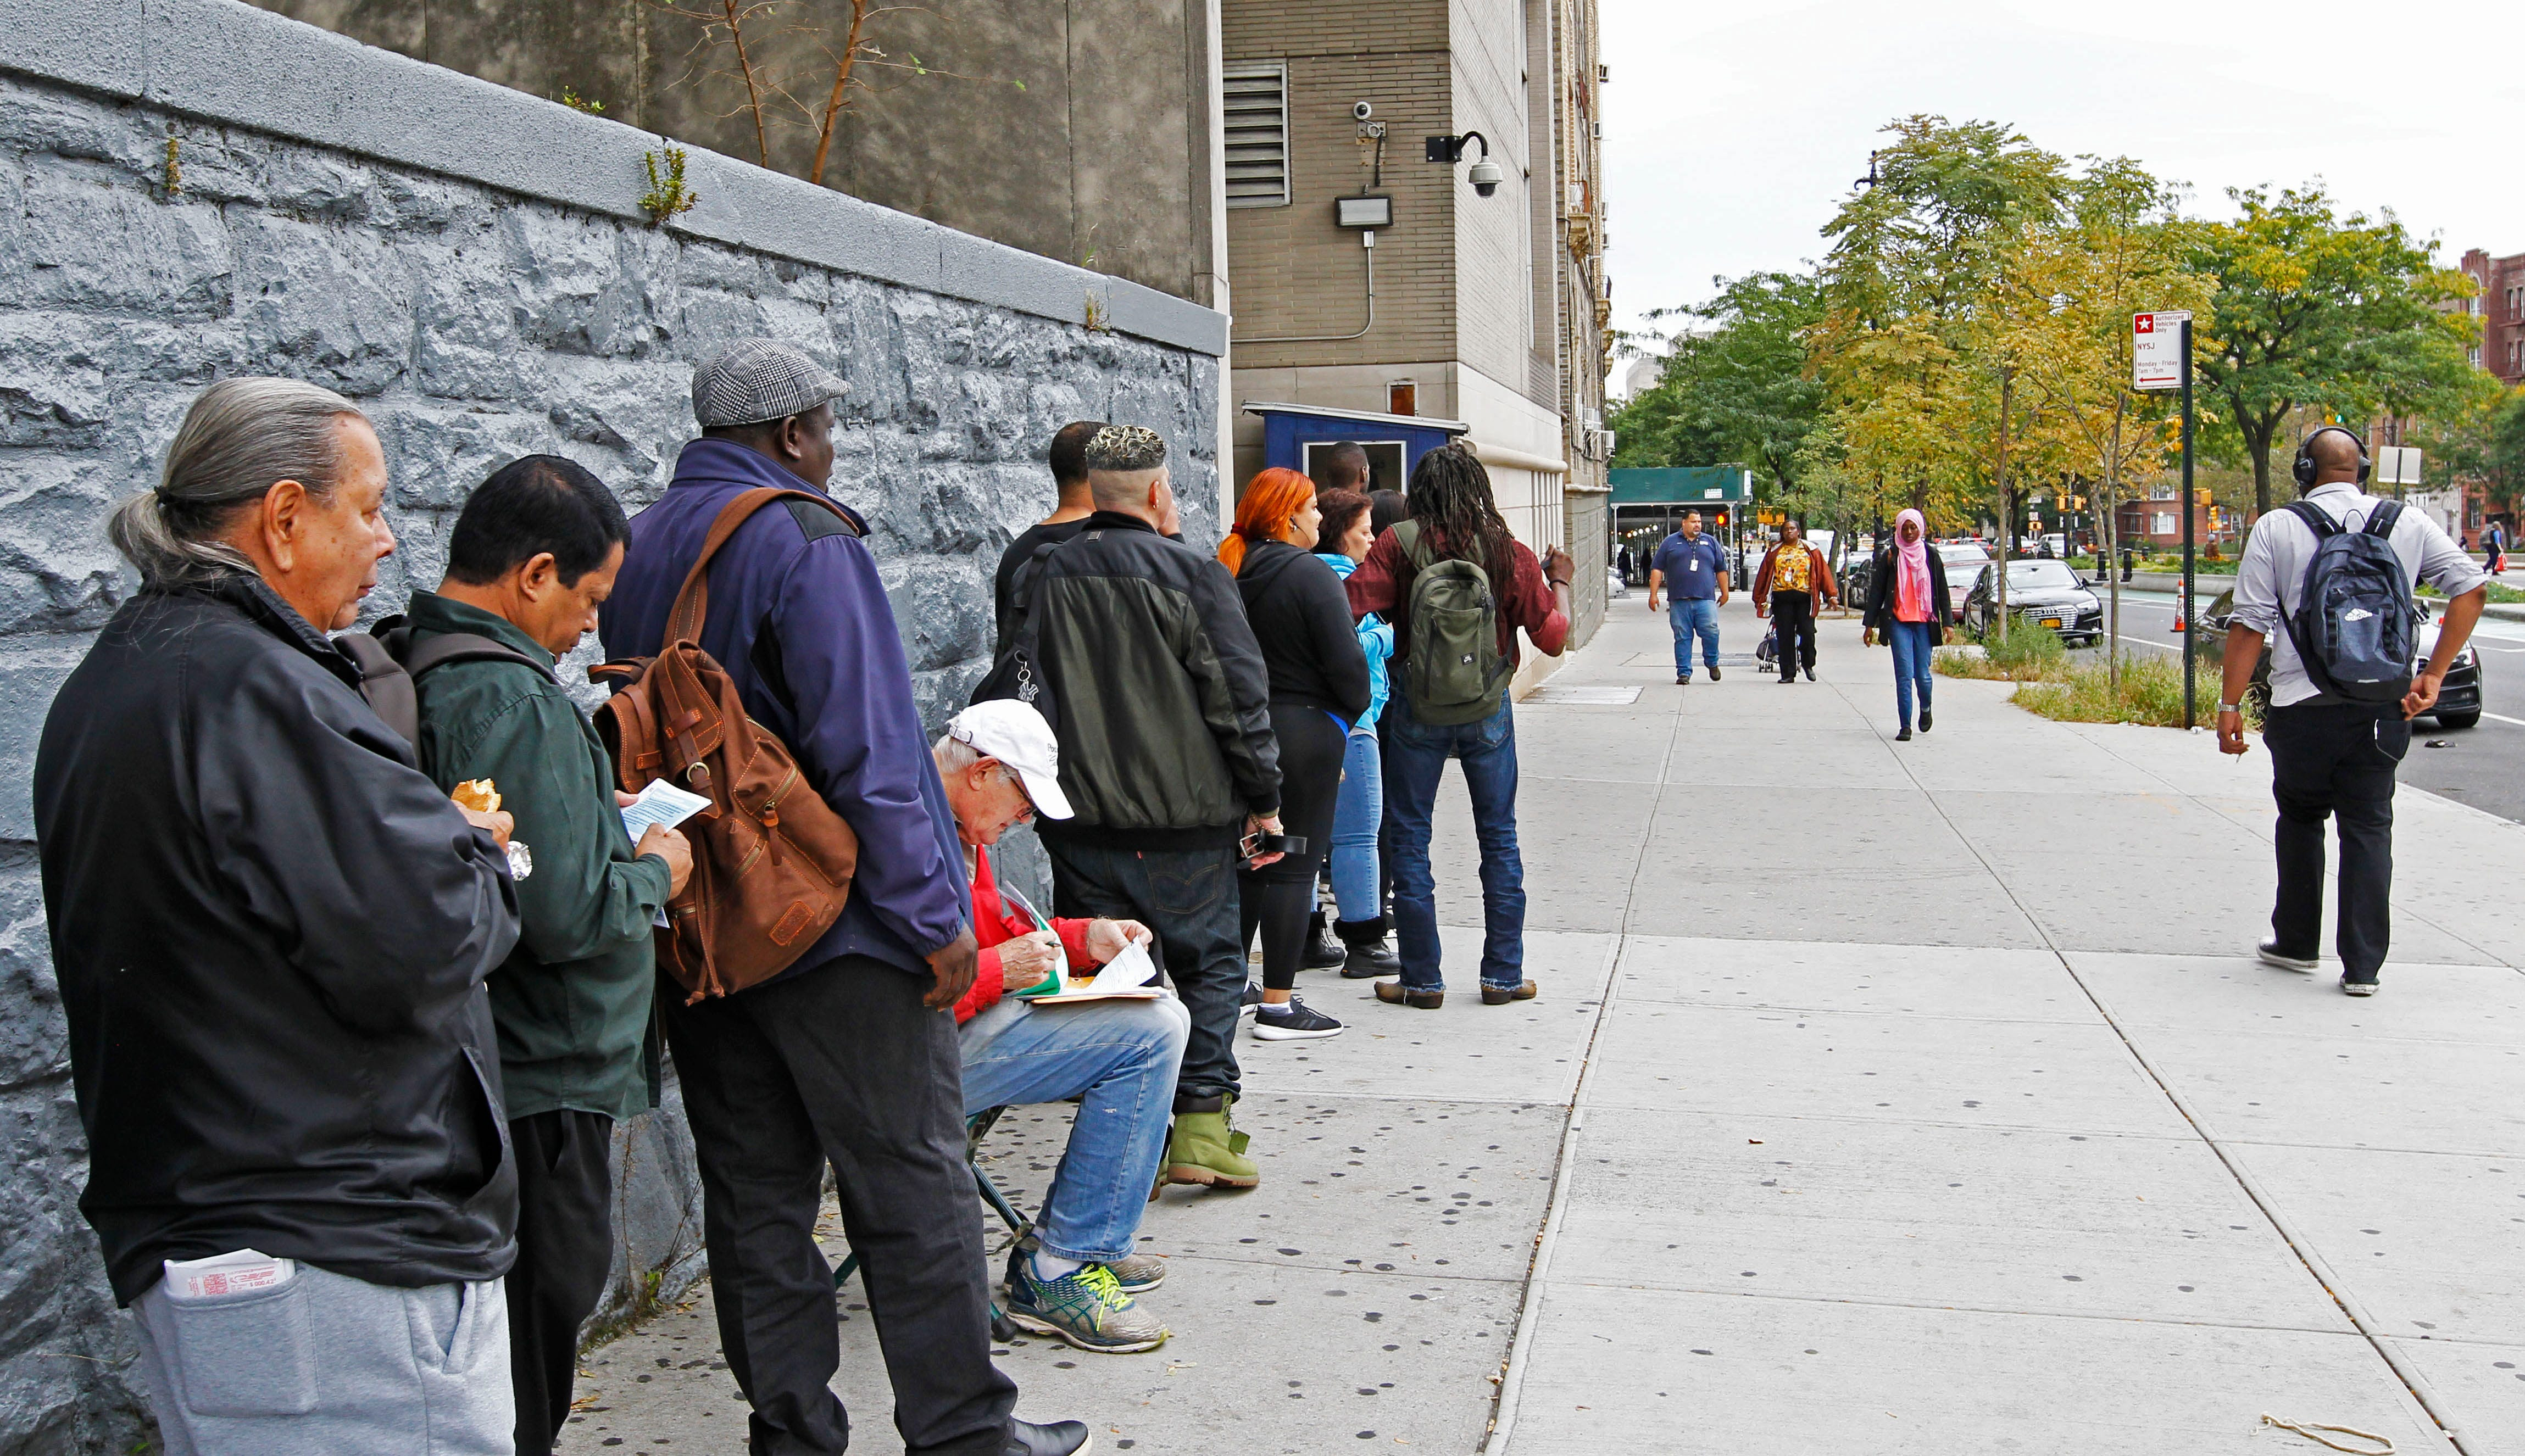 A morning crowd gathers outside the Bronx Housing Court on Monday, Oct. 7, 2019. New York City was the first in the nation to pass the right to counsel law in August 2017, guaranteeing legal representation to low-income residents facing eviction. The law won't be fully phased in until 2022 but is already having an effect in the court system. Prior to the pandemic, nearly 90,000 cases were heard yearly.